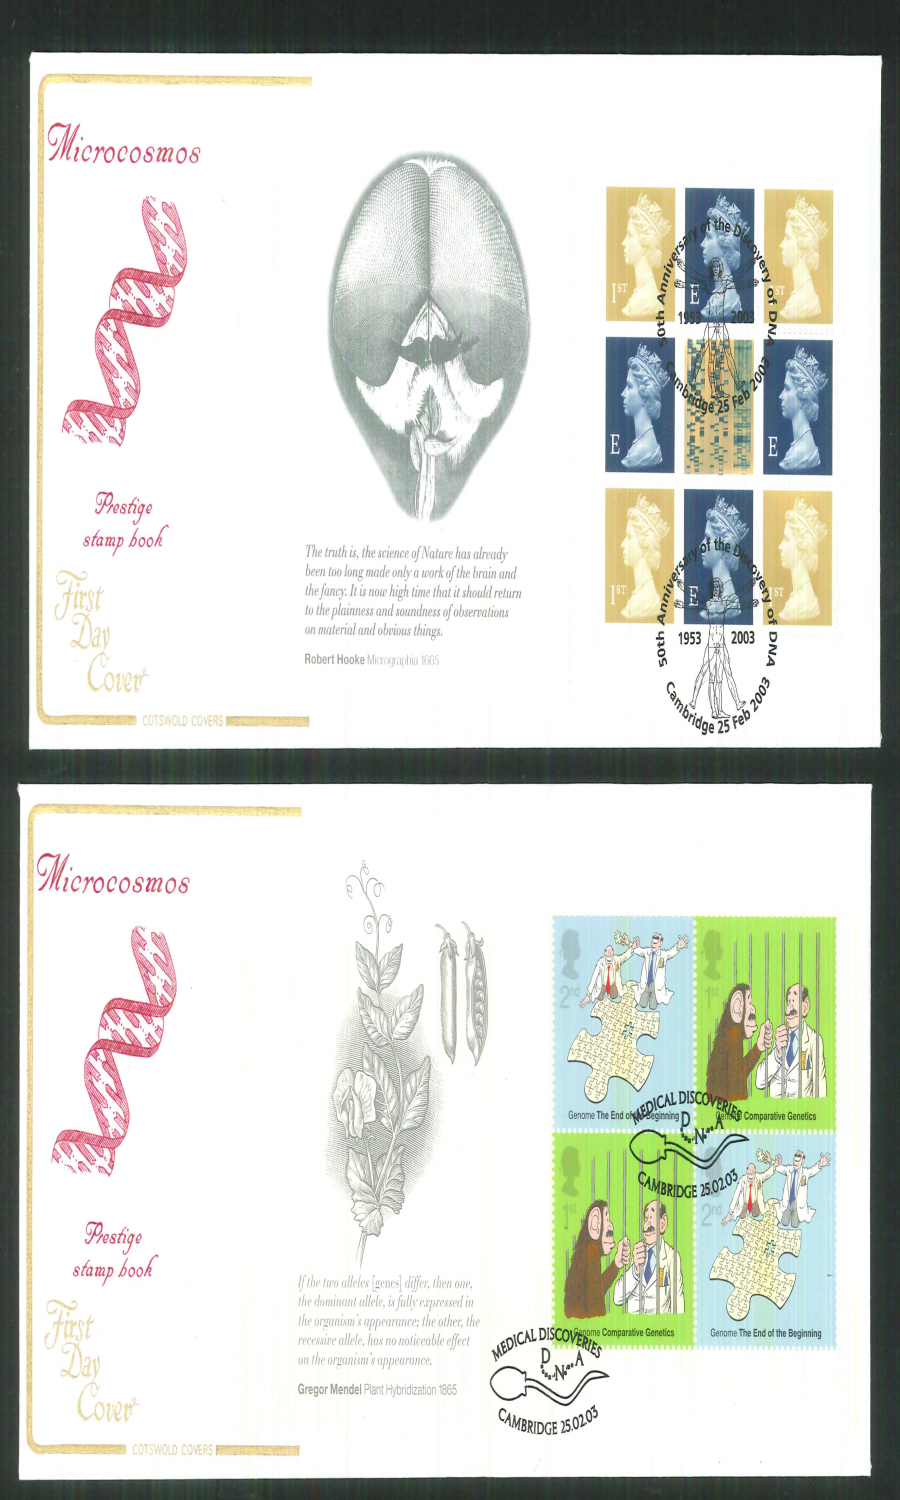 2003 - Medical Discoveries - Prestige Stamp Book Set of 4 Covers - Various Postmarks